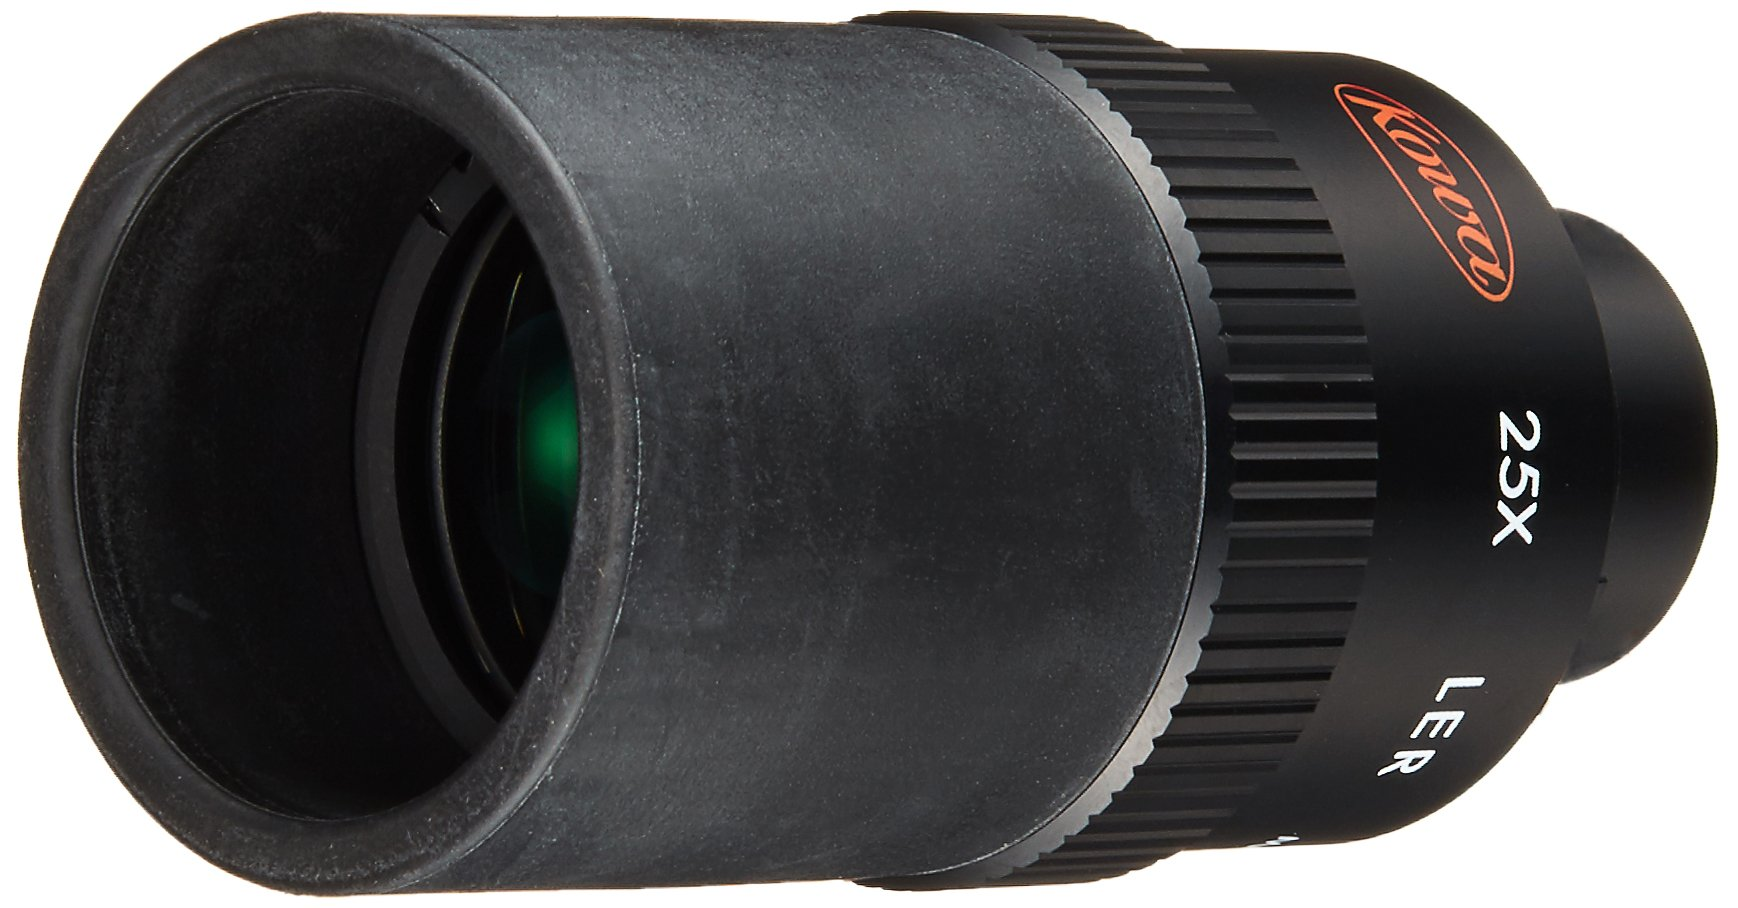 Kowa TSE-17HD 25x Long Eye Relief Eyepiece for Kowa TSN-600 and TSN-660 Series Spotting Scopes